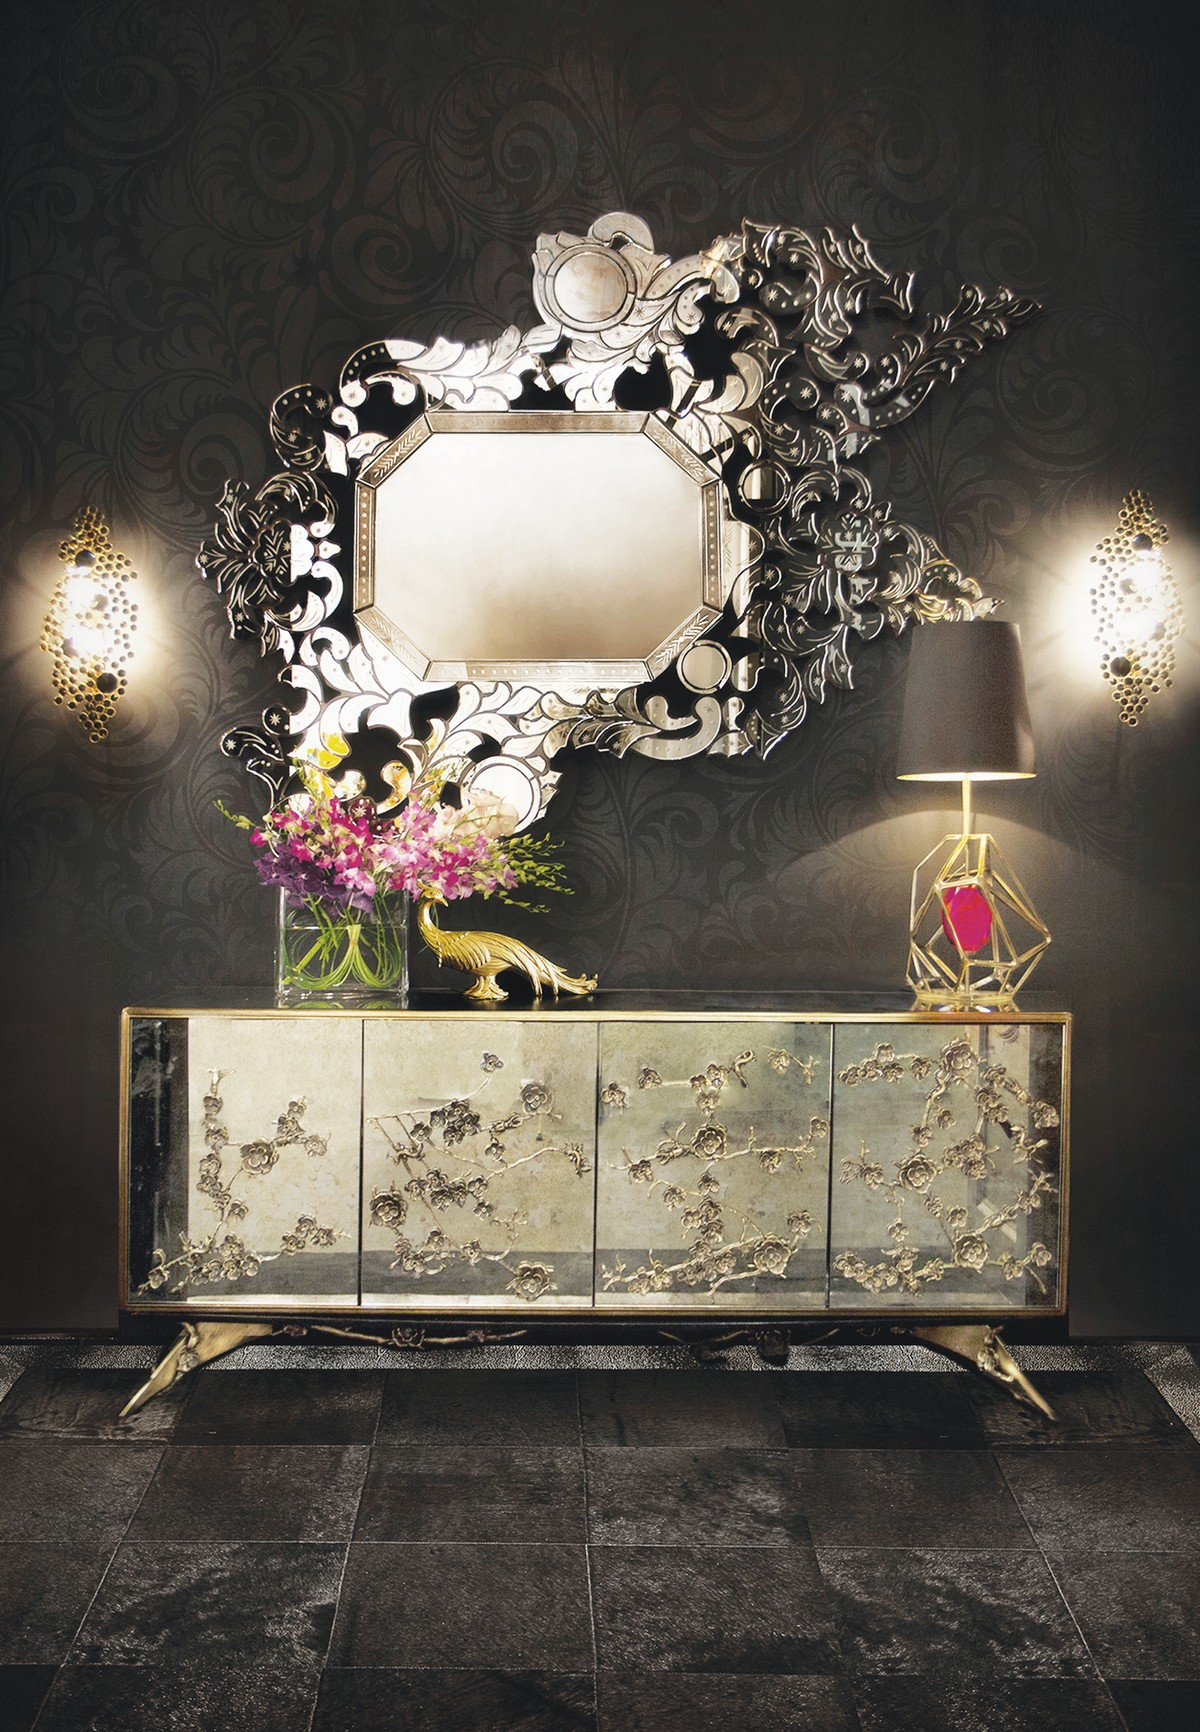 Inspiring Sideboard Ambiances You Will Love (Part II)